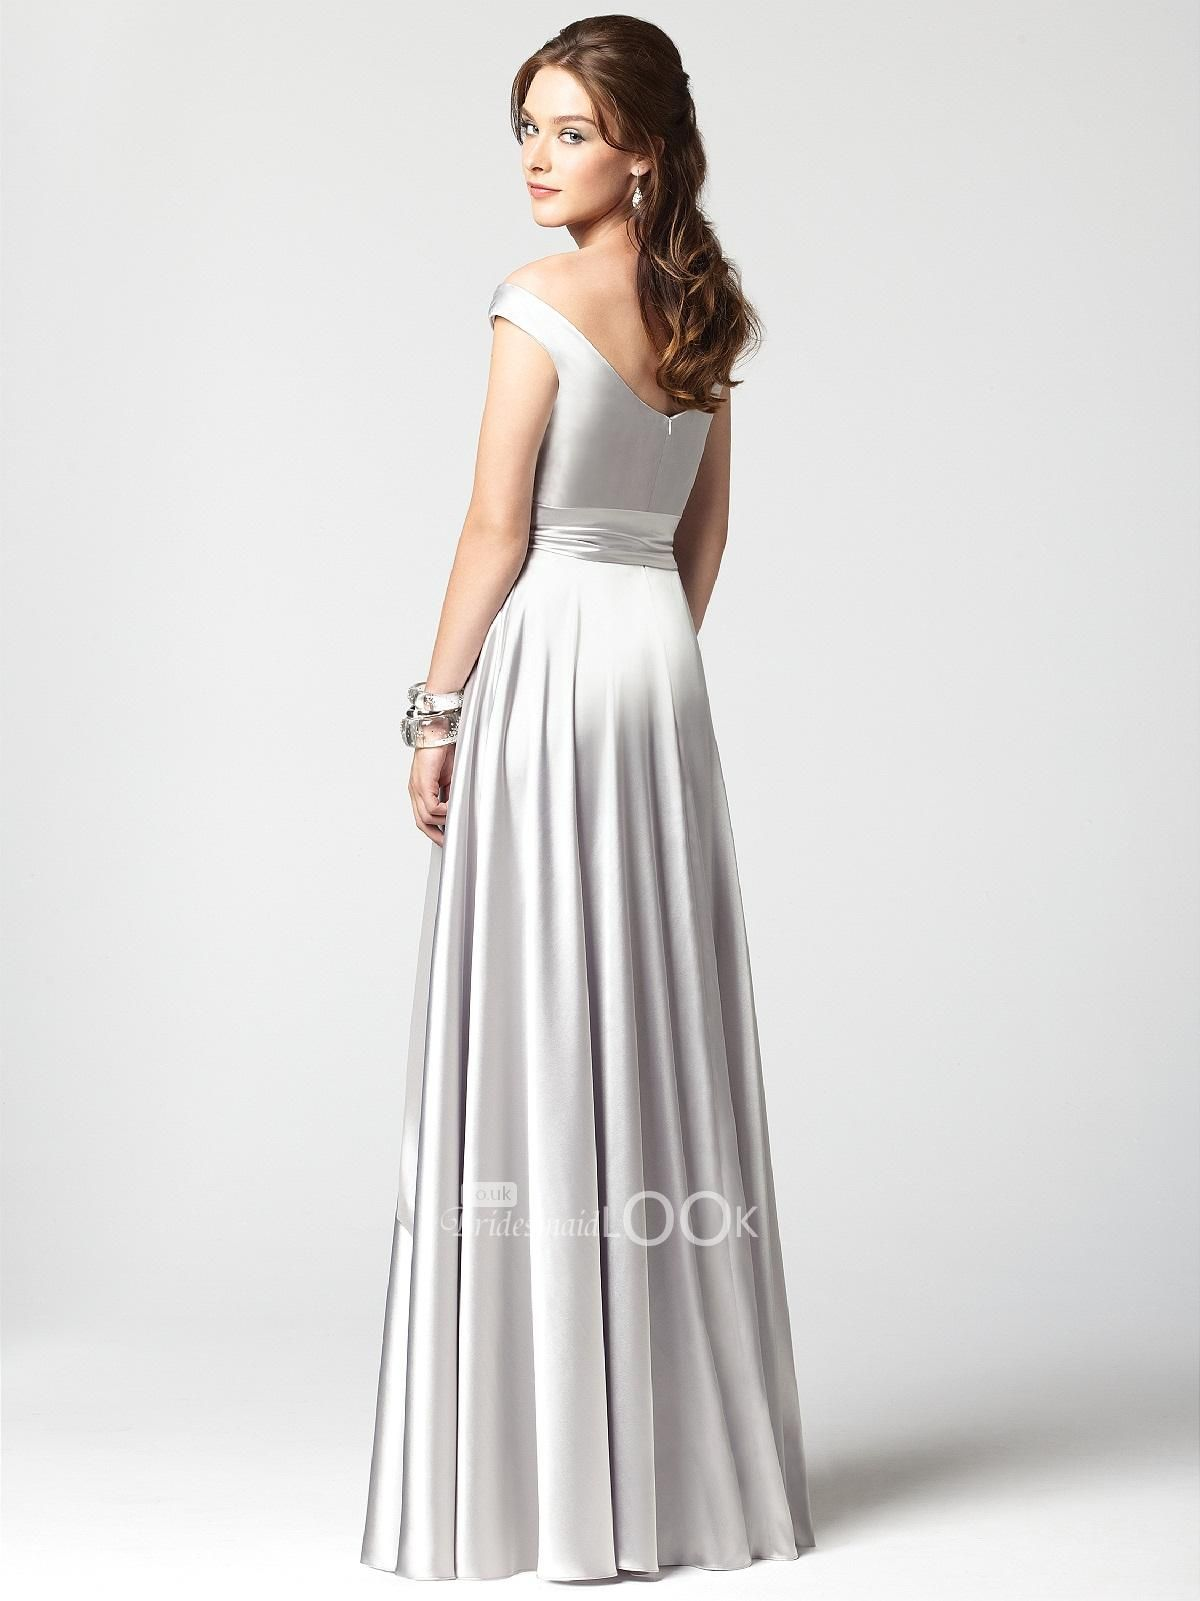 Elegant silver bridesmaid dress off the shoulder stretch with elegant silver bridesmaid dress off the shoulder stretch with natural ombrellifo Image collections